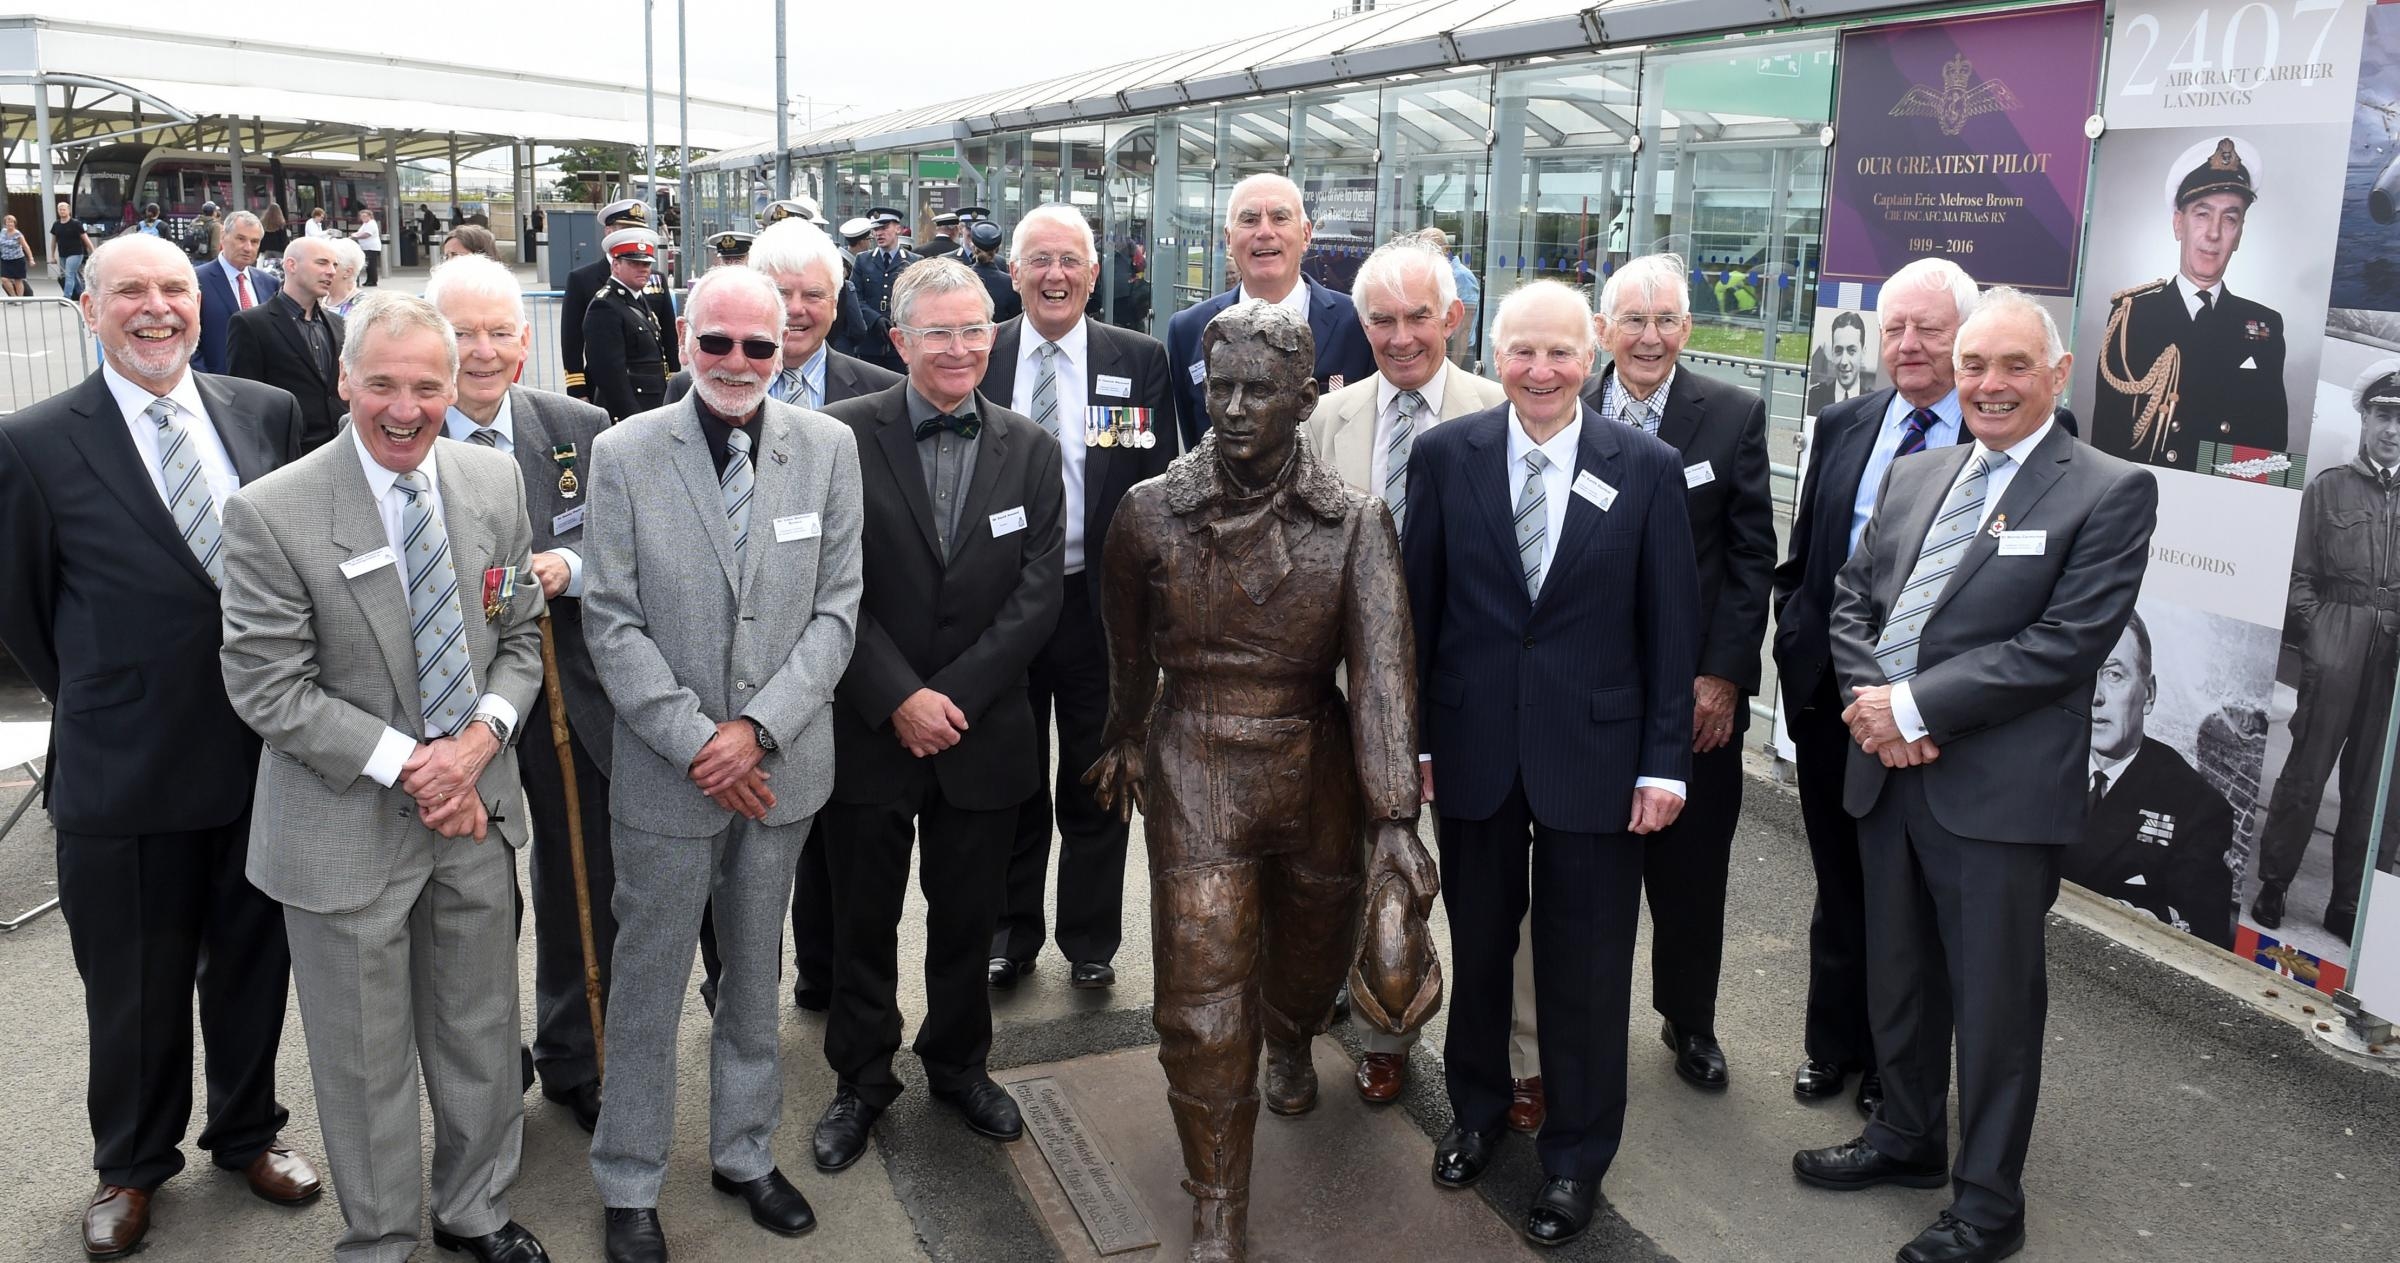 The Captain Eric 'Winkle' Brown statue was unveiled at the airport yesterday